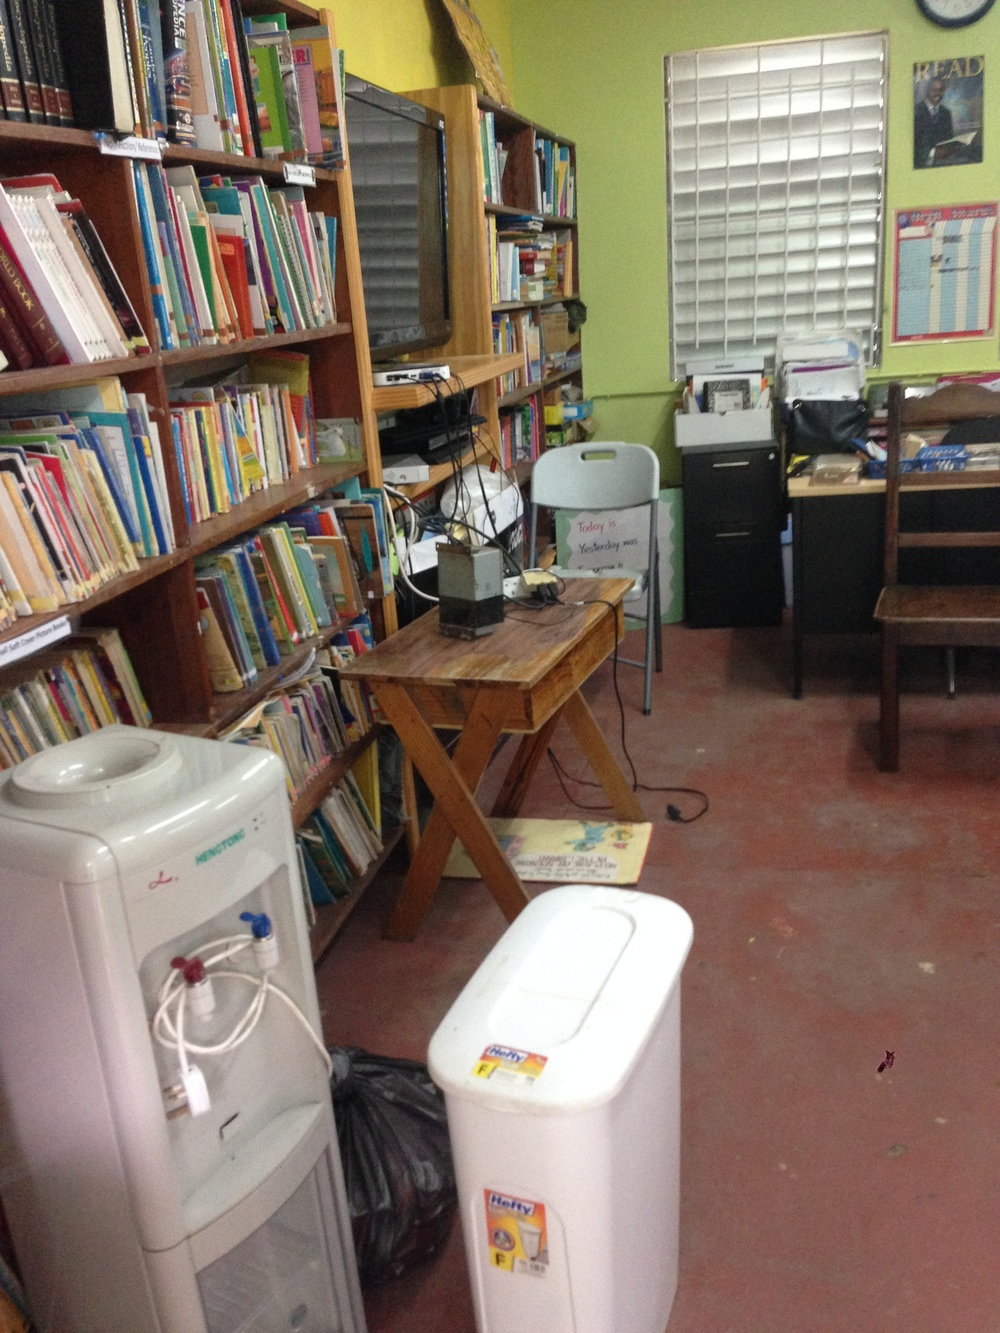 The good news is that there was a room that was designated as the library. This is not the case at some of the schools with Peace Corps Volunteers.